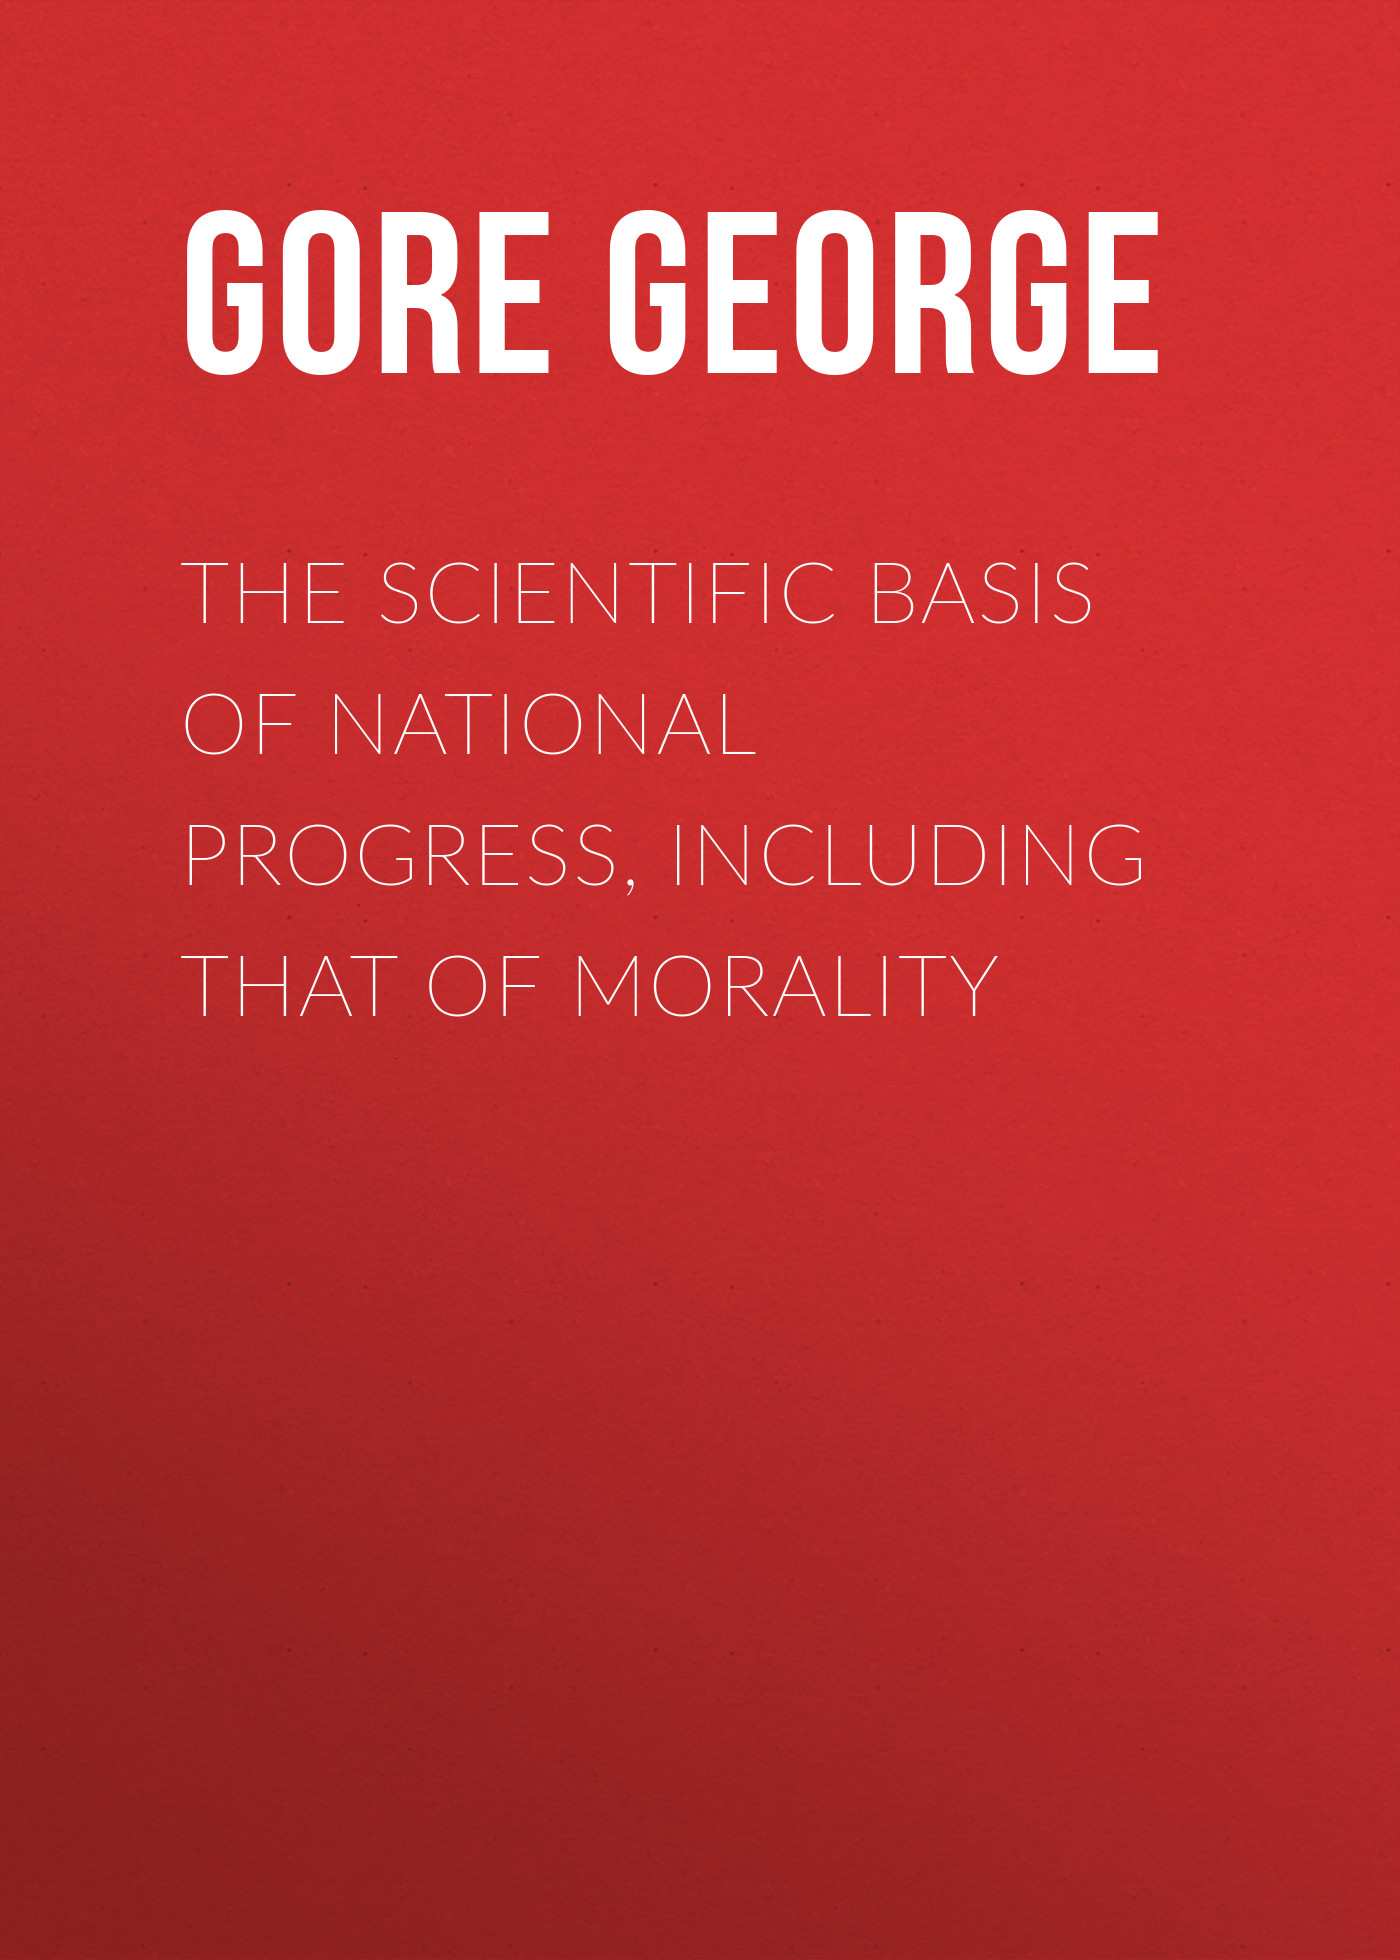 Gore George The Scientific Basis of National Progress, Including that of Morality take that take that progress